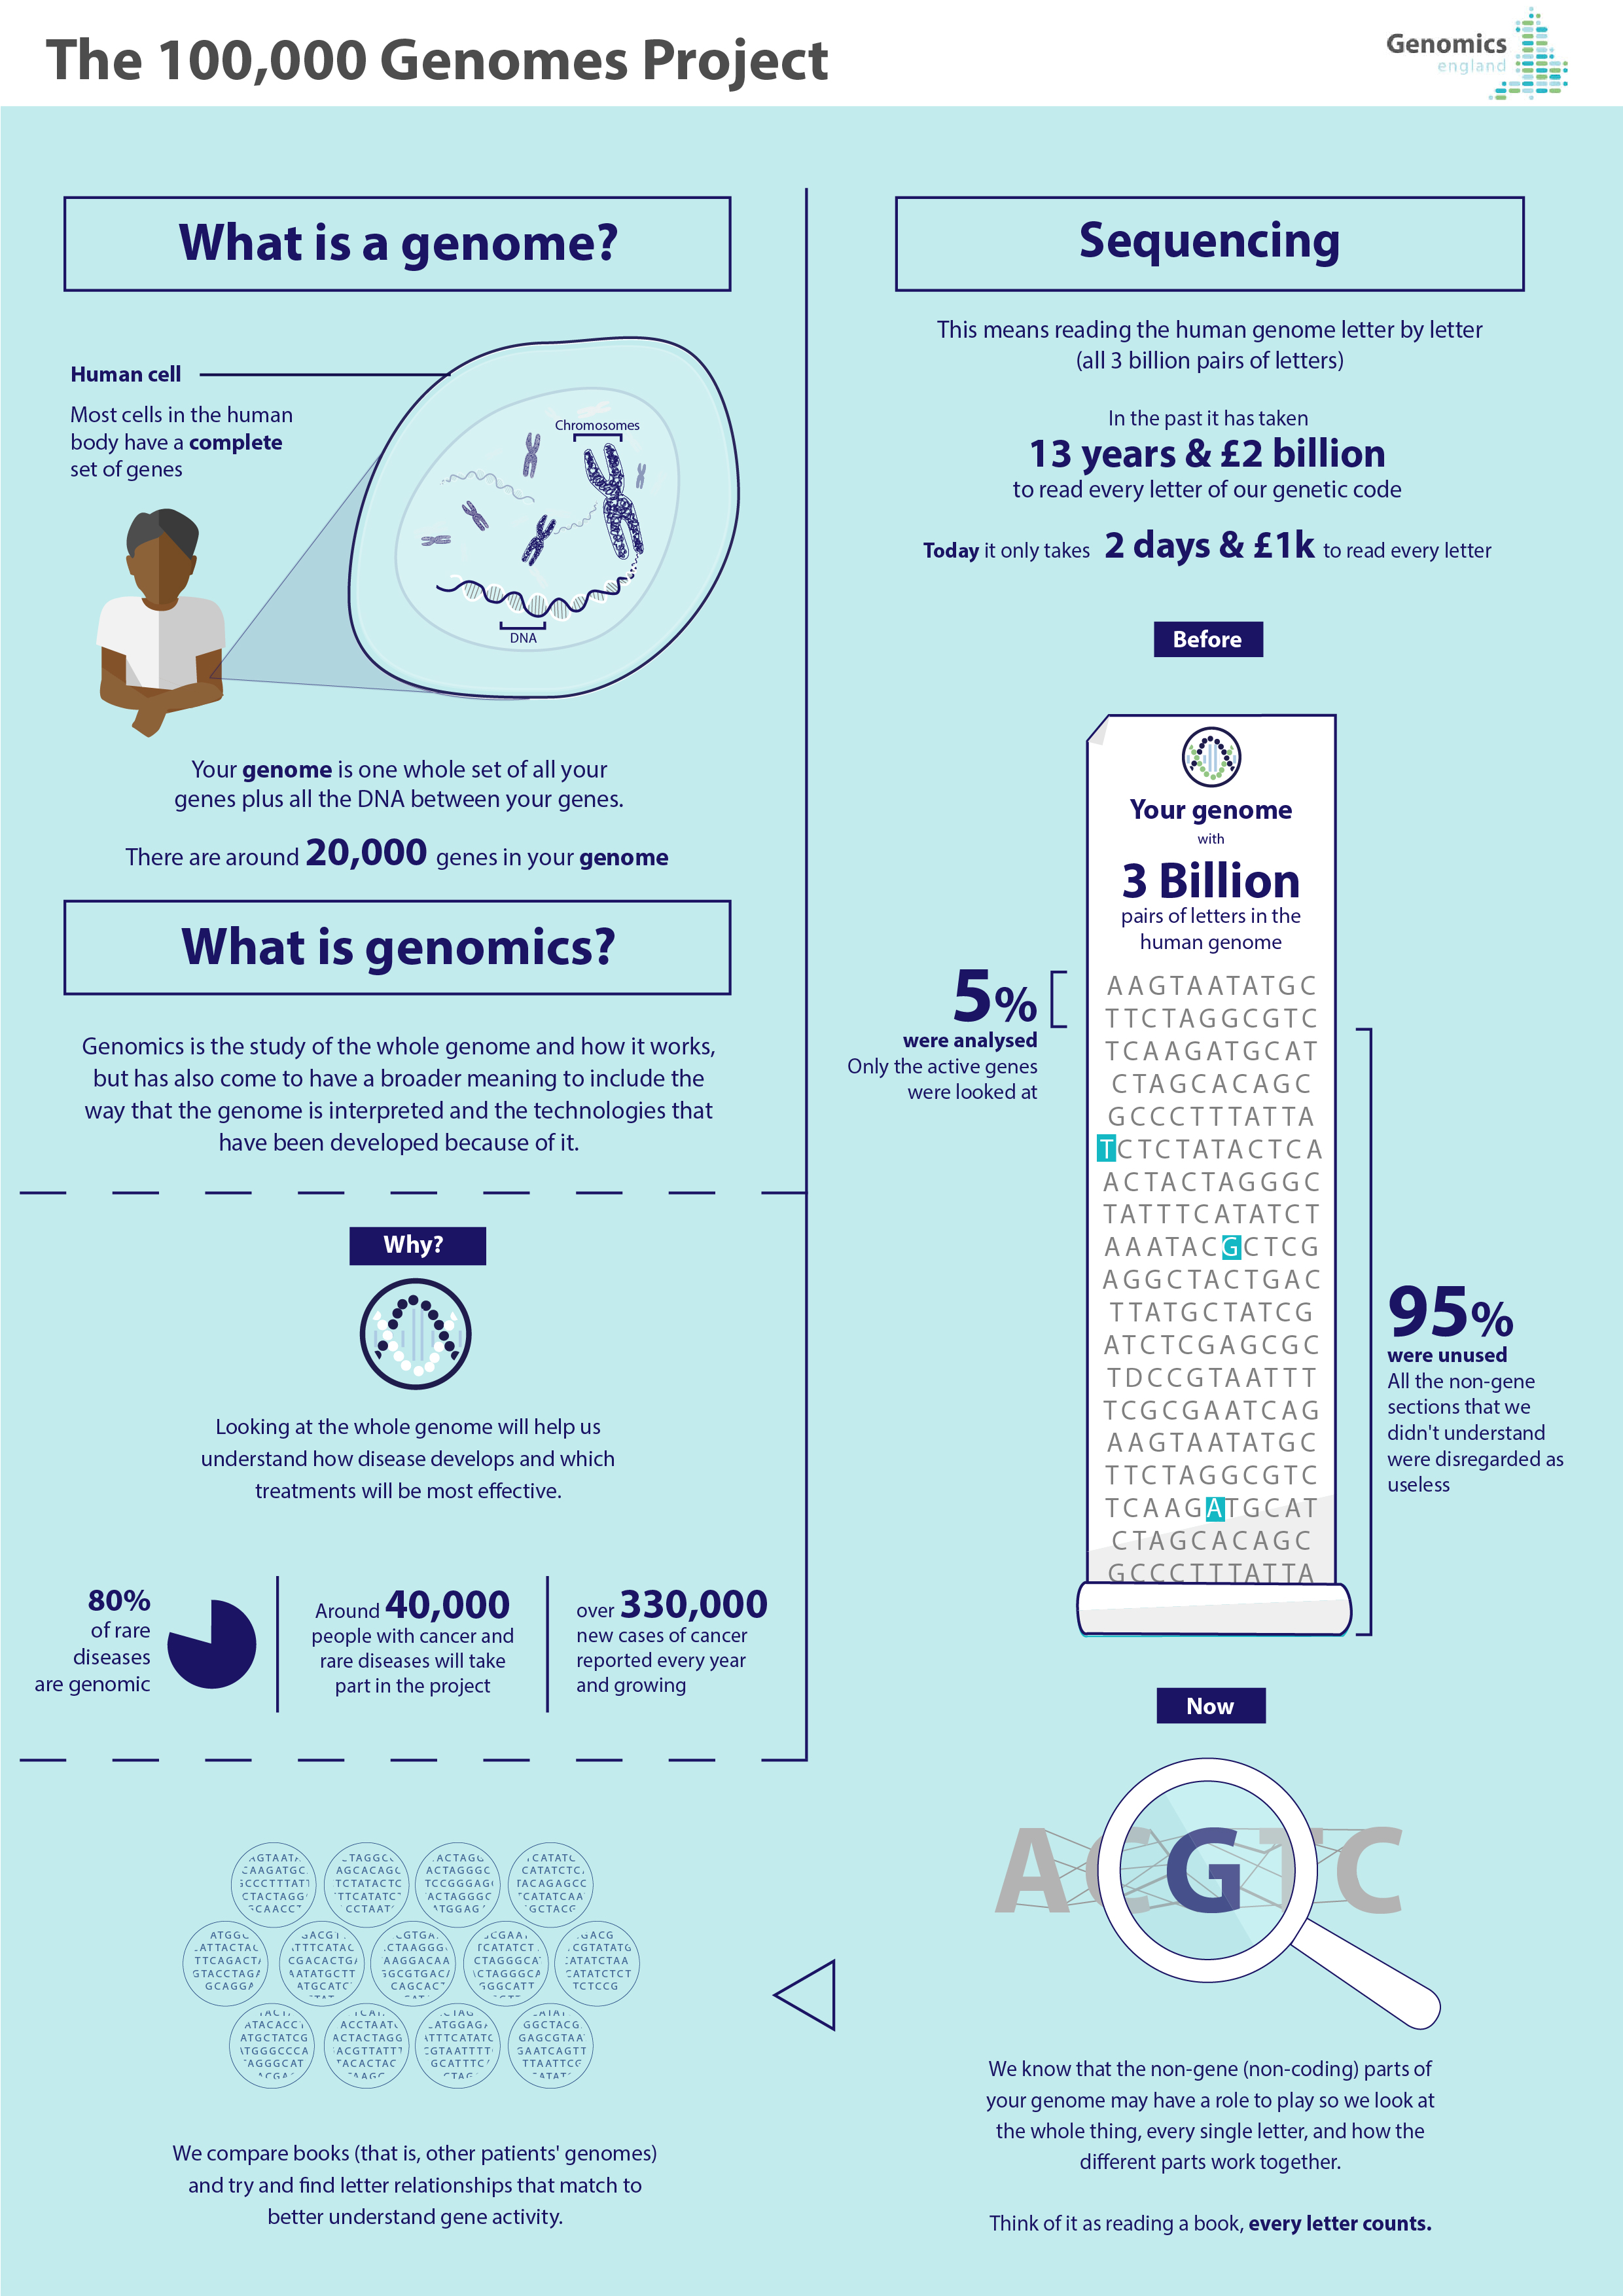 What is a genome?